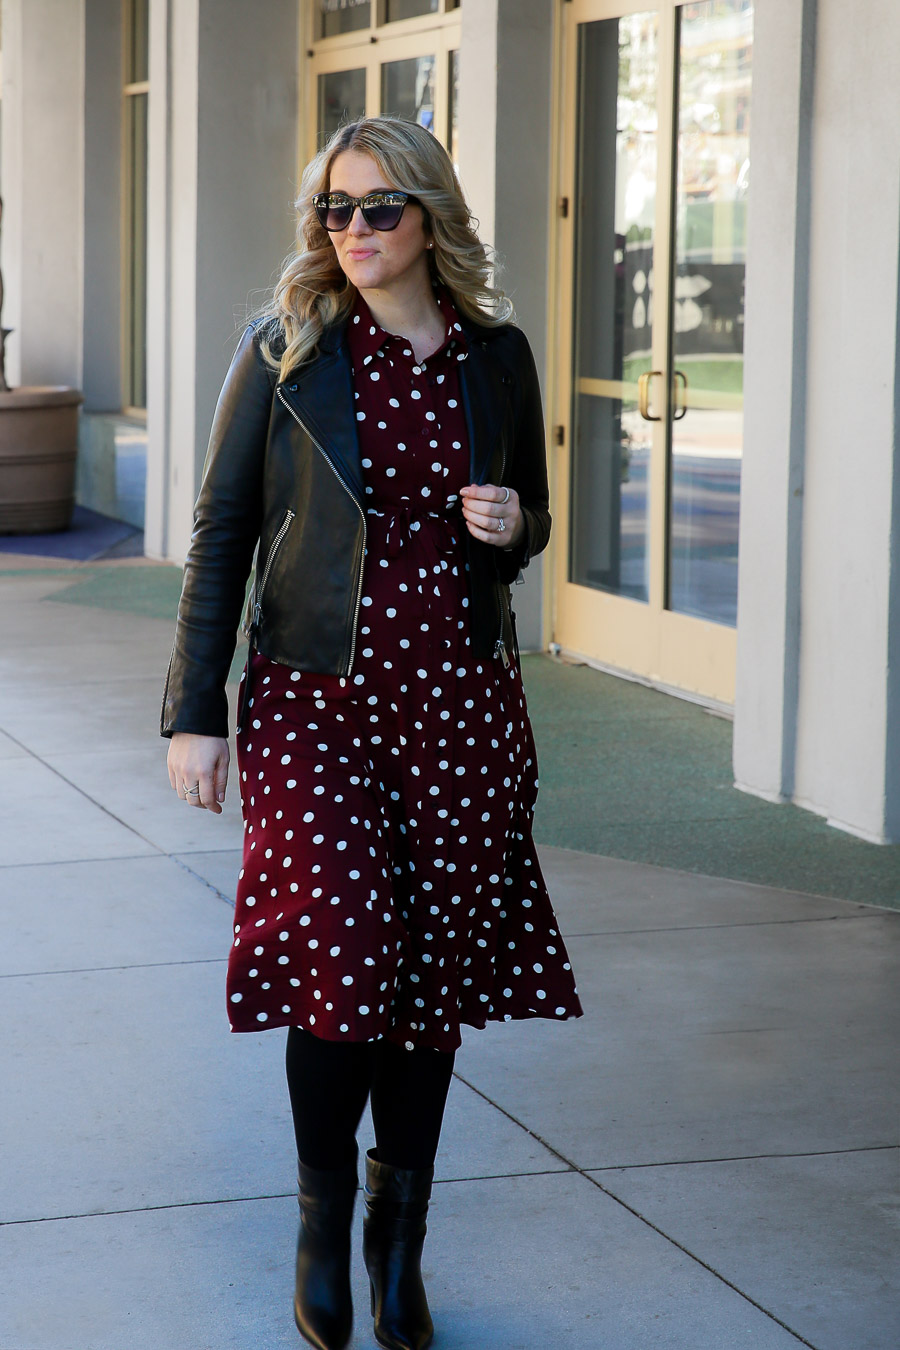 Maternity Dress Outfit with Leather Jacket - Isabella Oliver Review